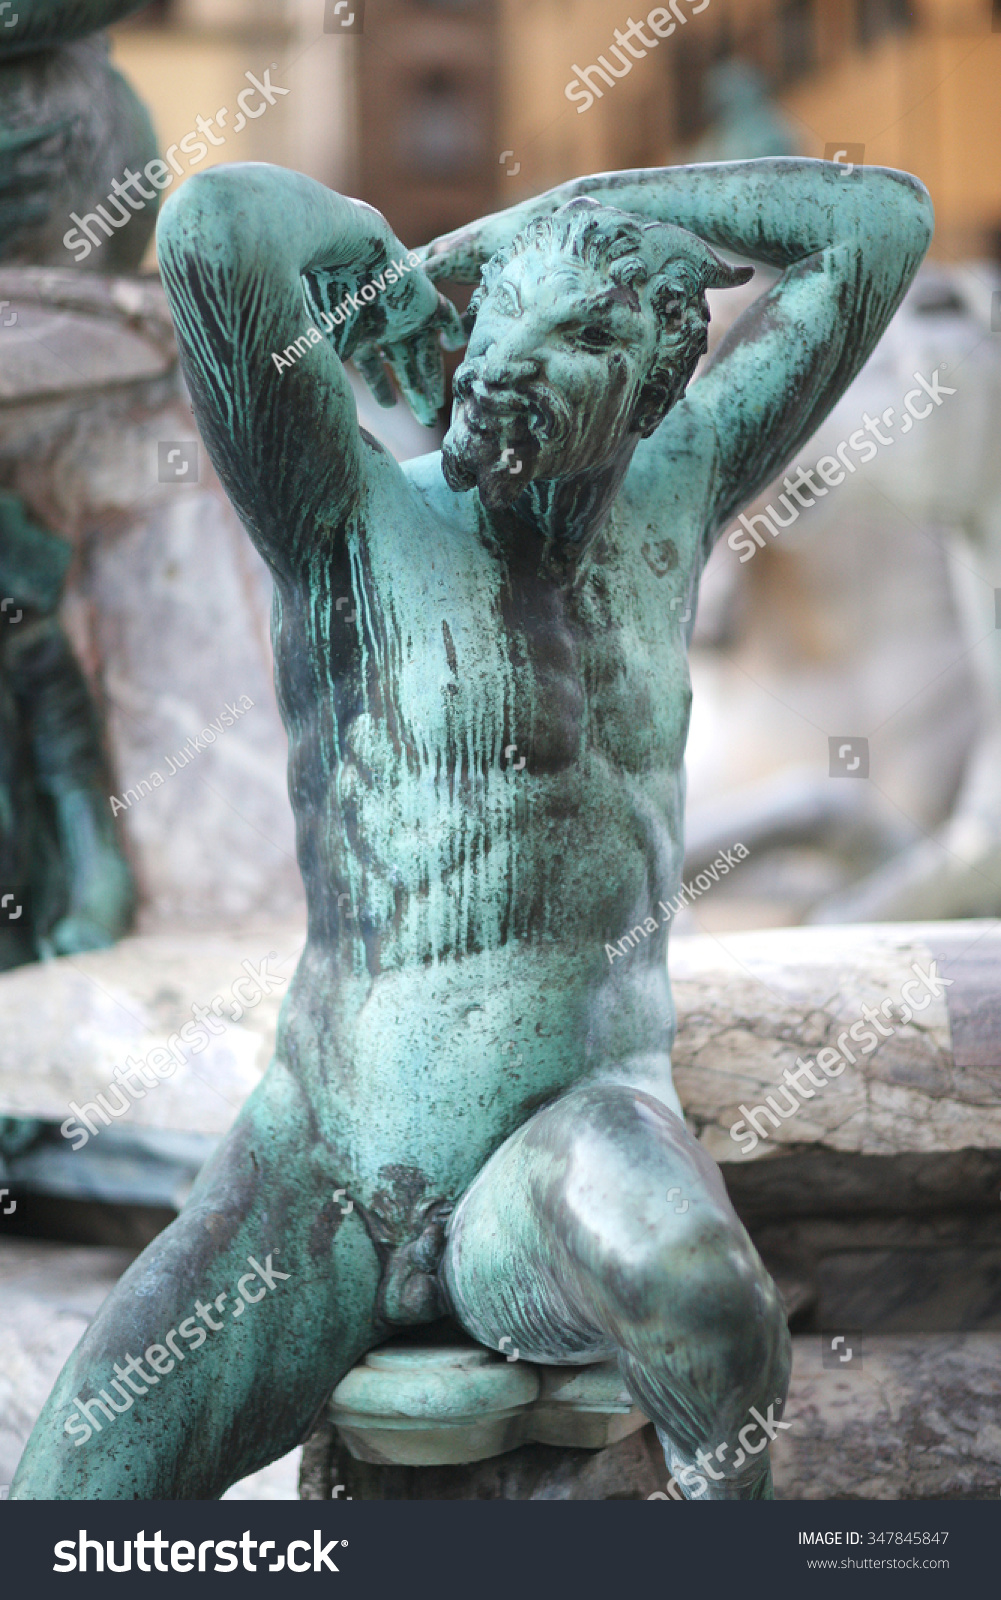 Satyr Stock Images - Download 740 Royalty Free Photos